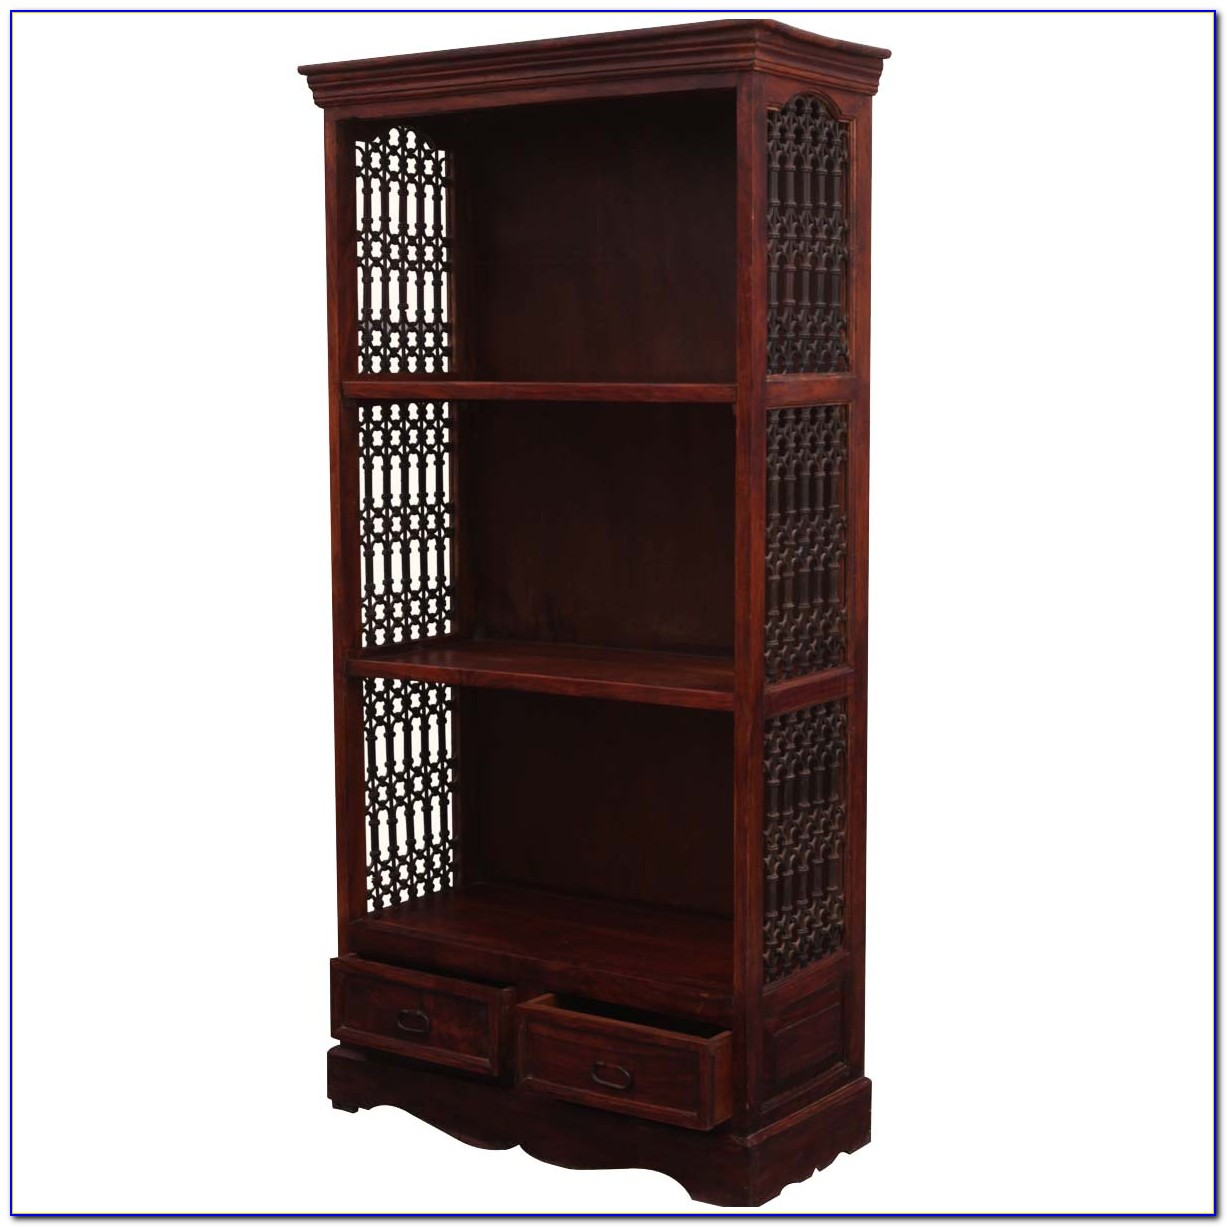 Wrought Iron Bookcase Designs